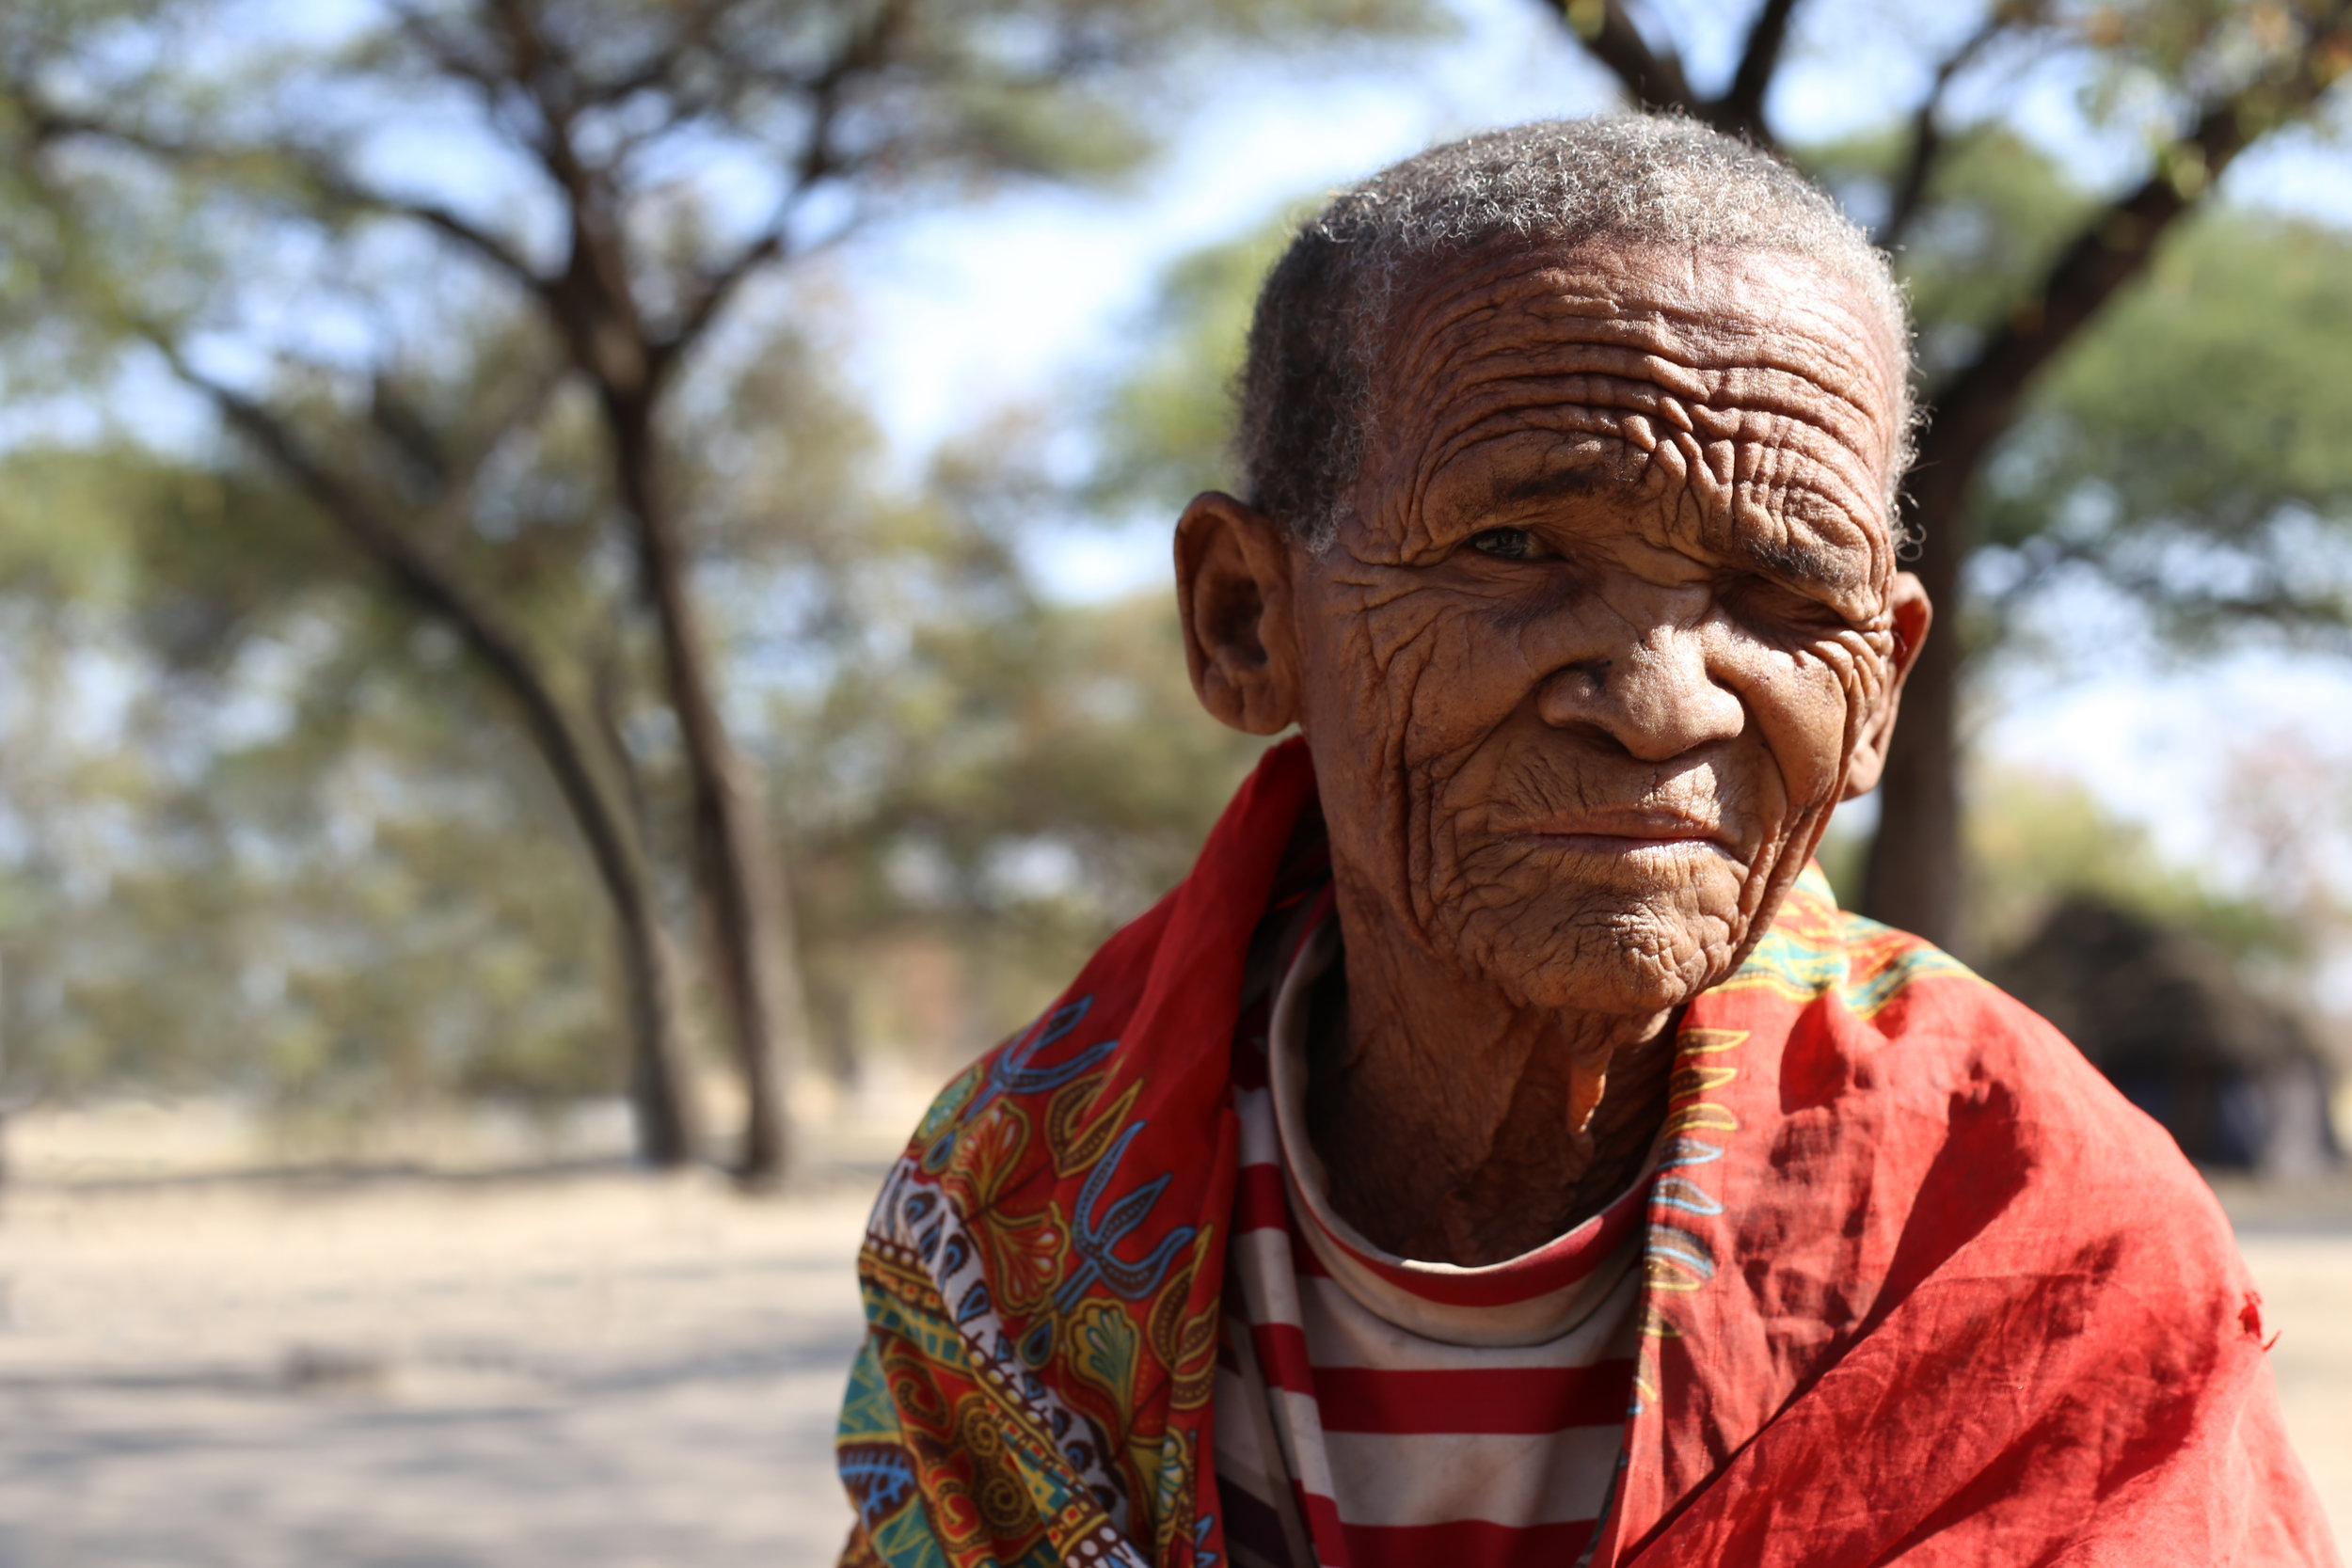 The oldest and founding member of the Ombili San Village. She is 80 years old.